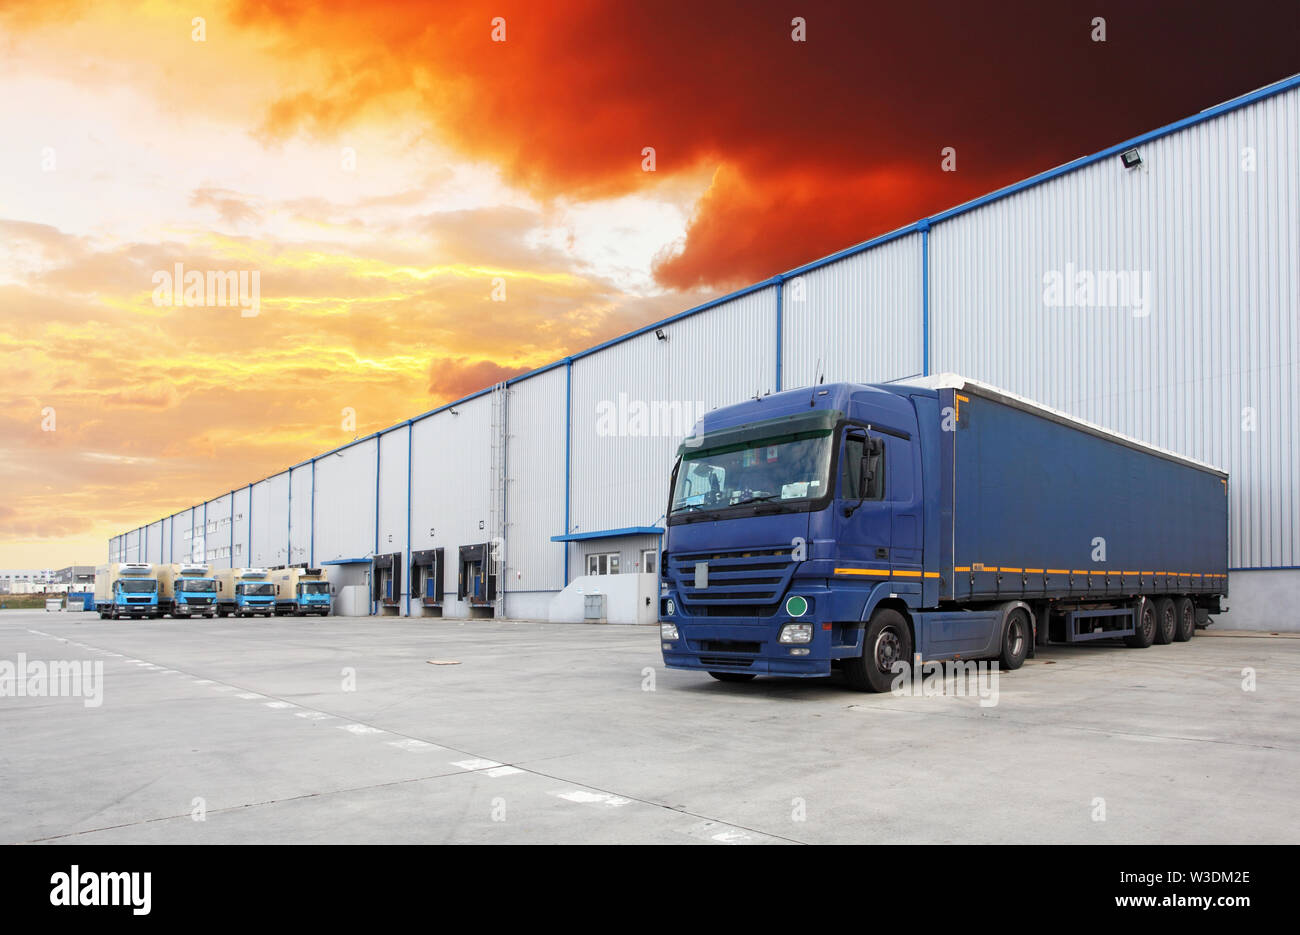 Truck at warehouse building Stock Photo